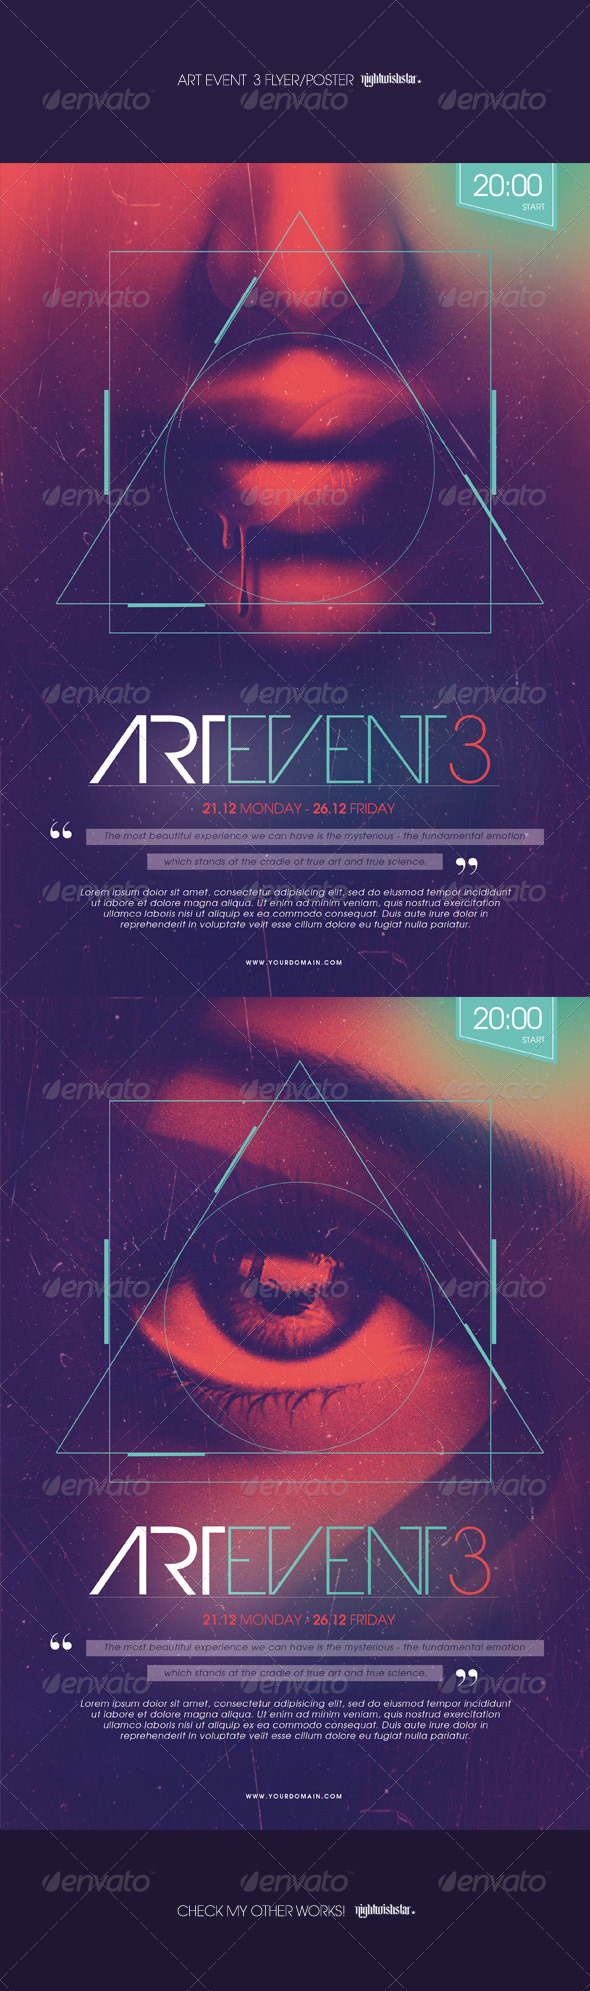 GraphicRiver Art Event 3 Poster Flyer 7890386